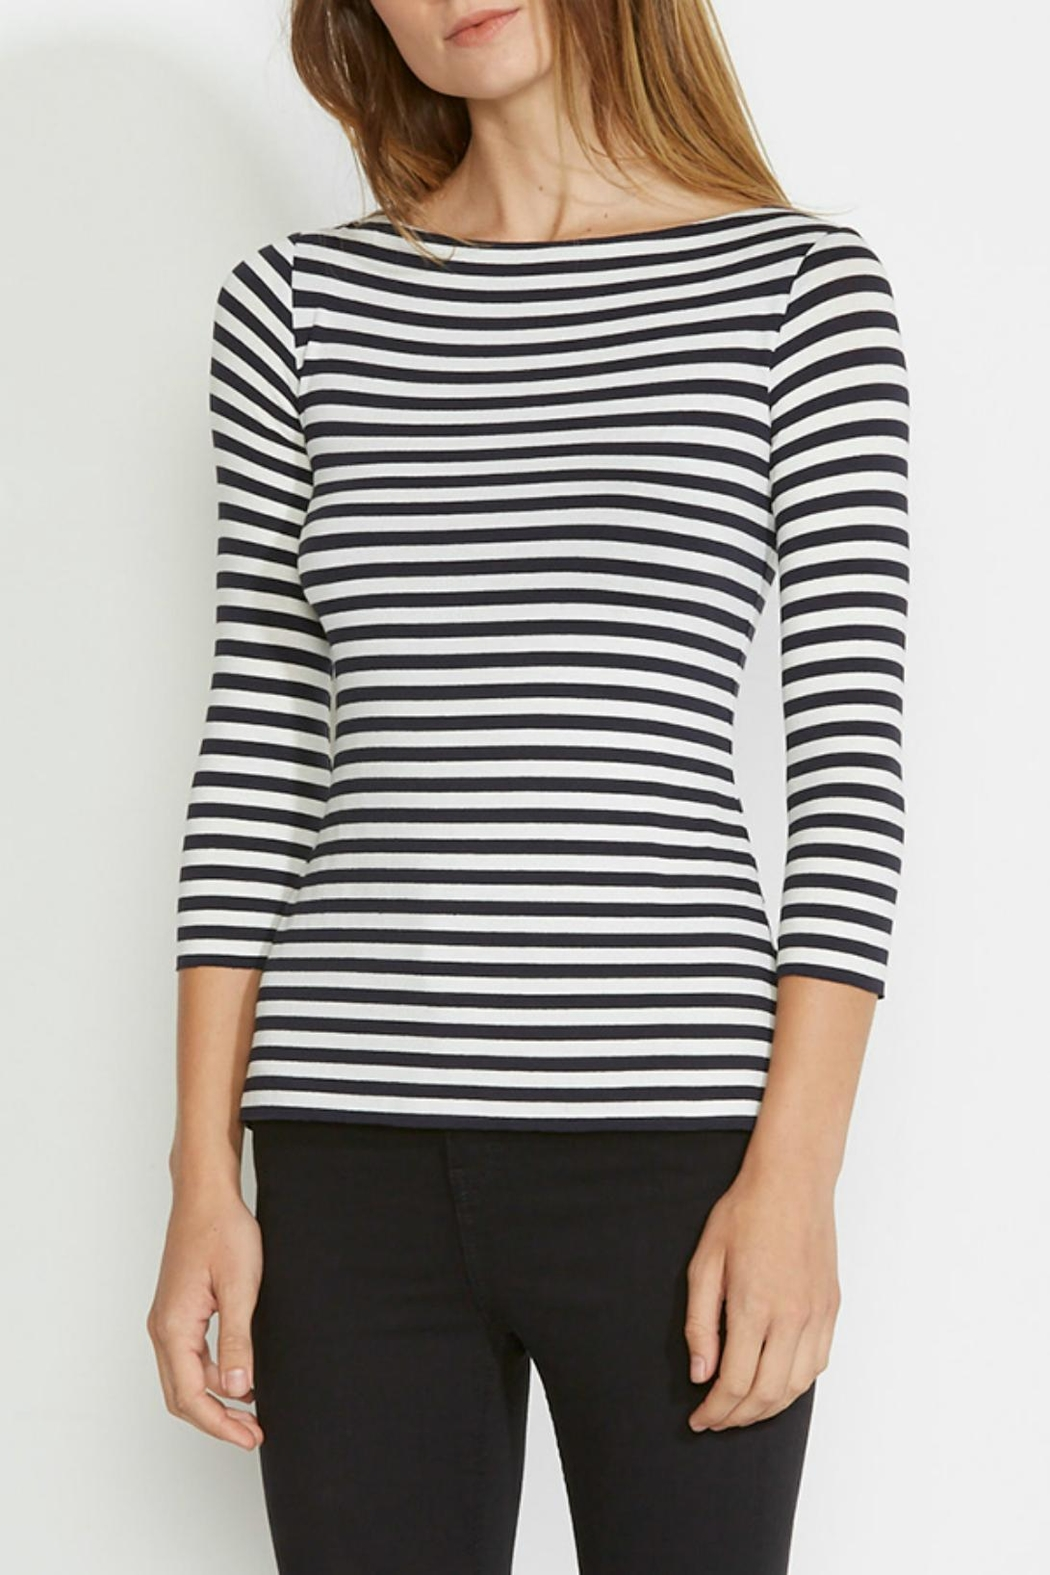 Bailey 44 Lace Up Top - Main Image